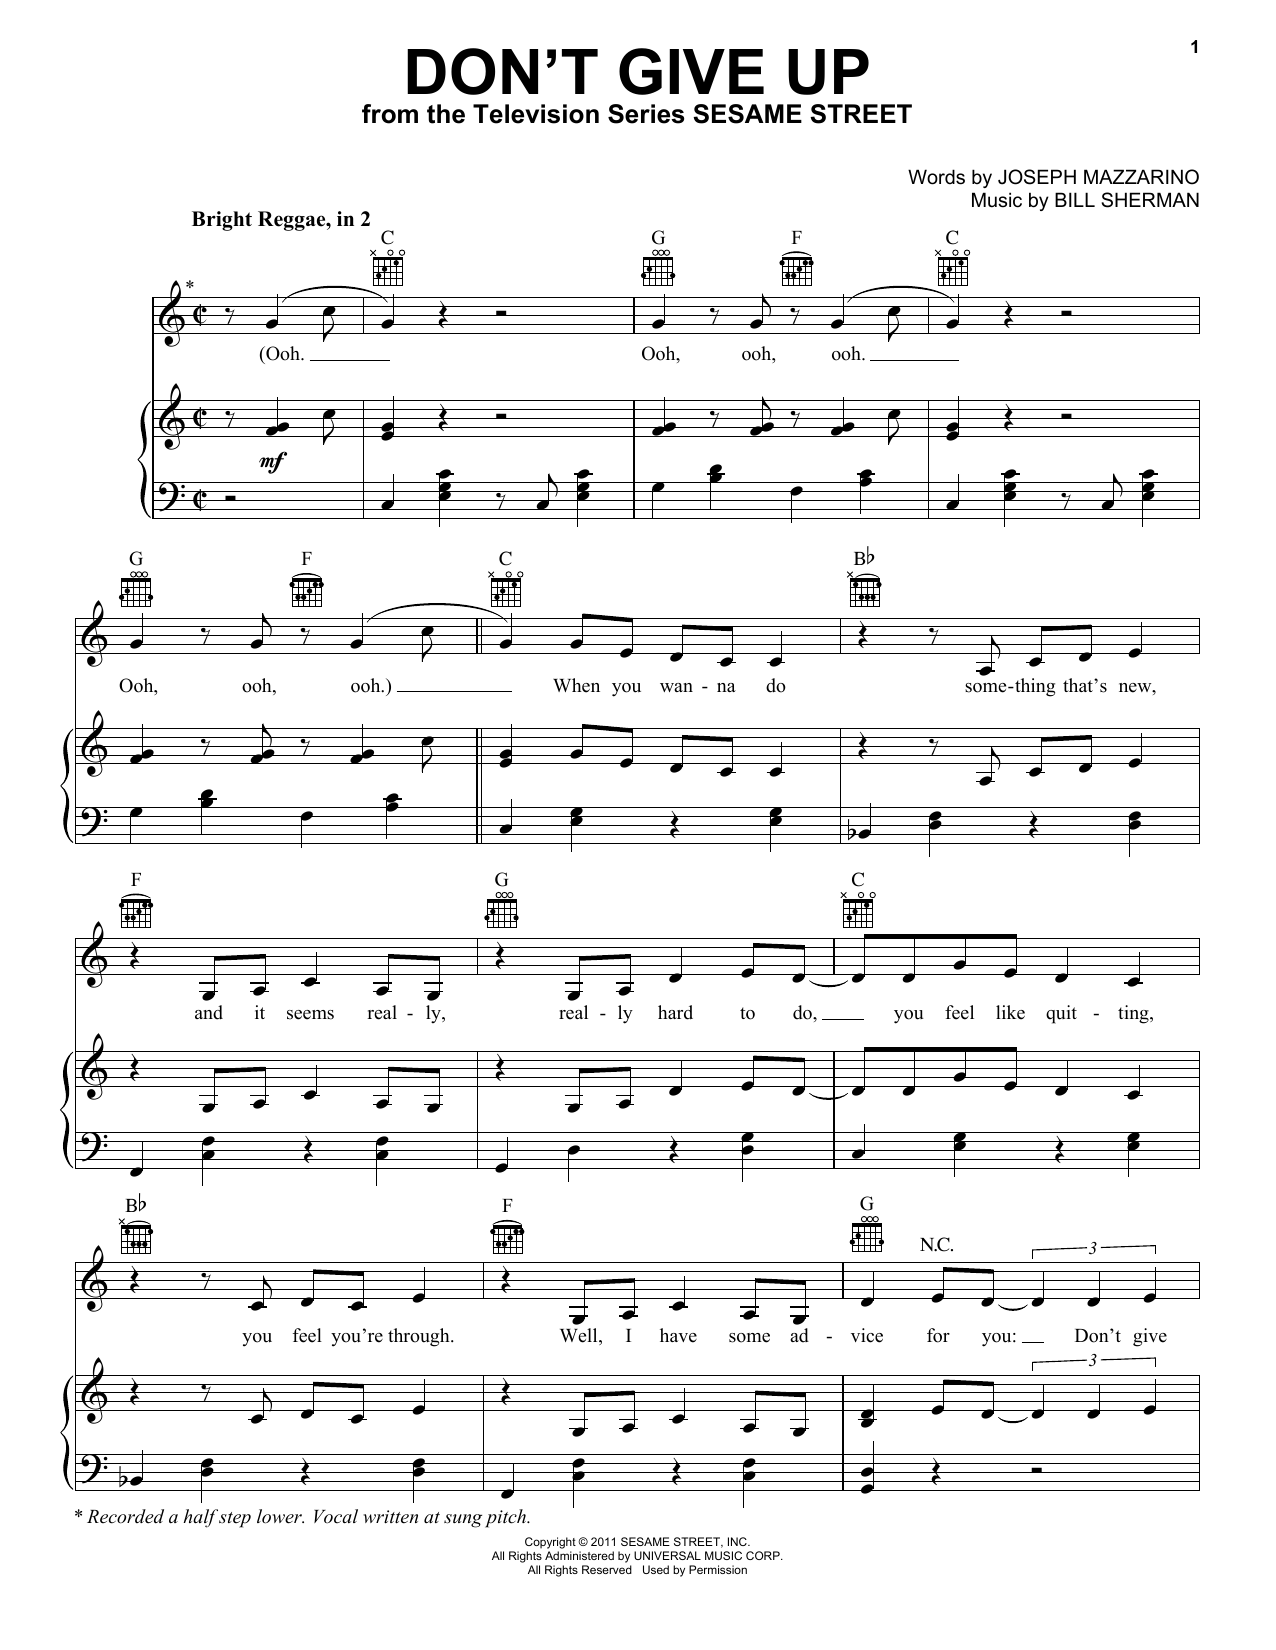 Bruno Mars Don't Give Up (from Sesame Street) sheet music notes and chords. Download Printable PDF.